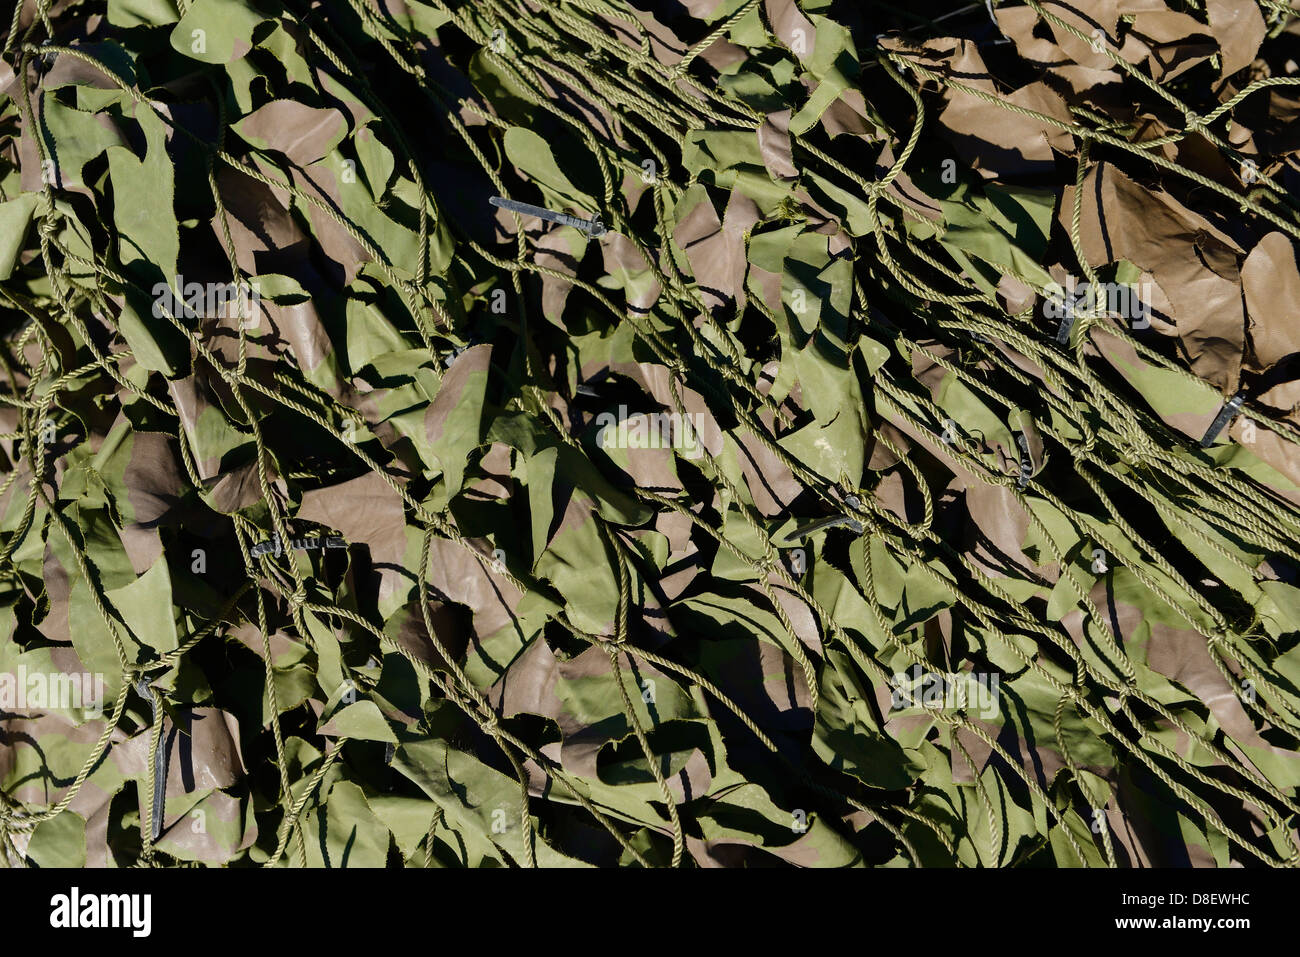 Army camouflage netting detail - Stock Image